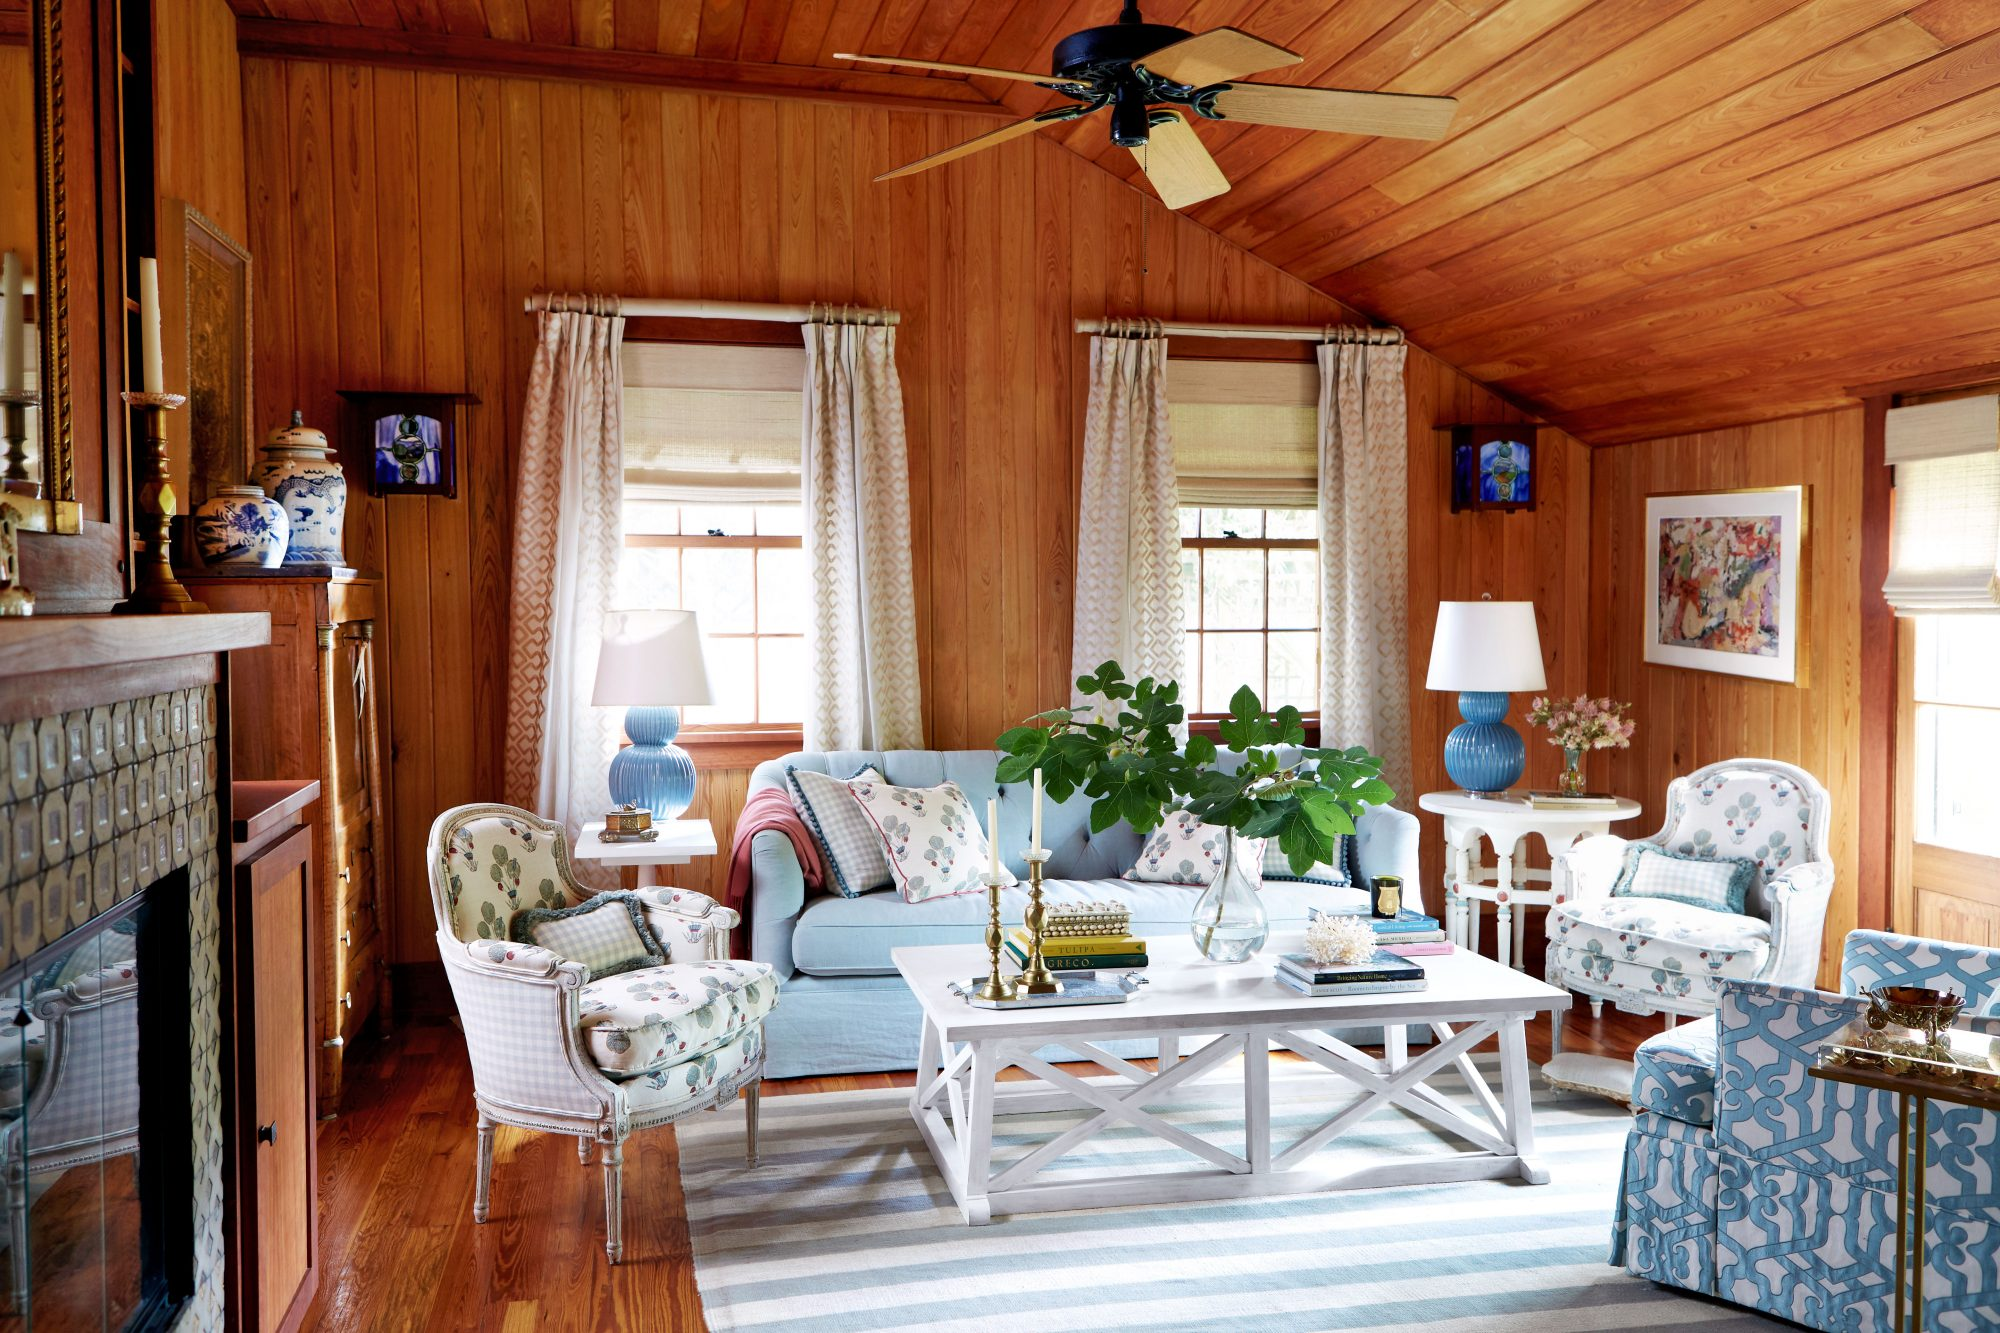 Wood-clad Living Room with White and Blue Furniture